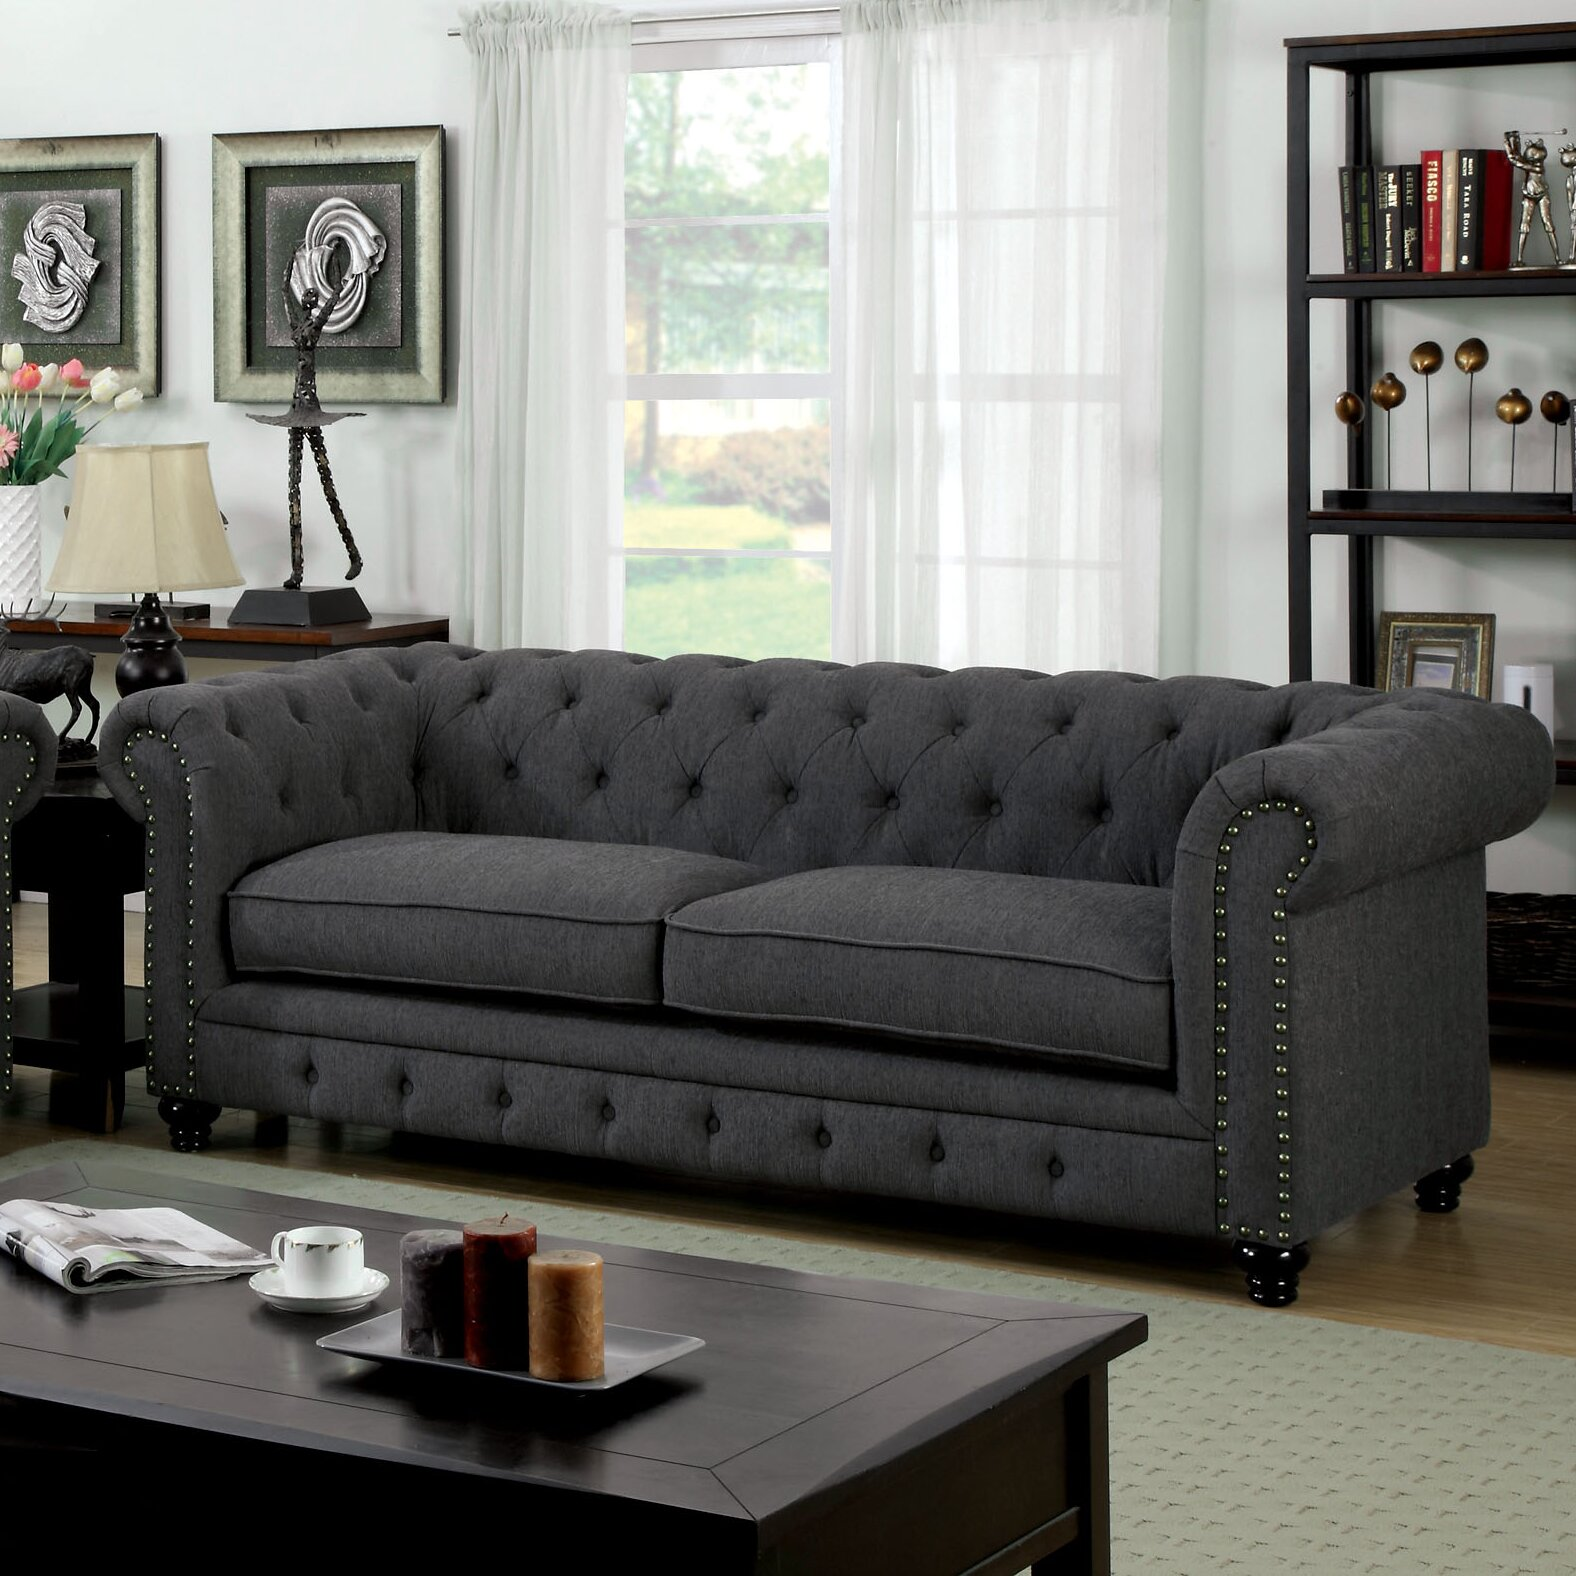 hokku designs cedric 90 chesterfield sofa reviews wayfair